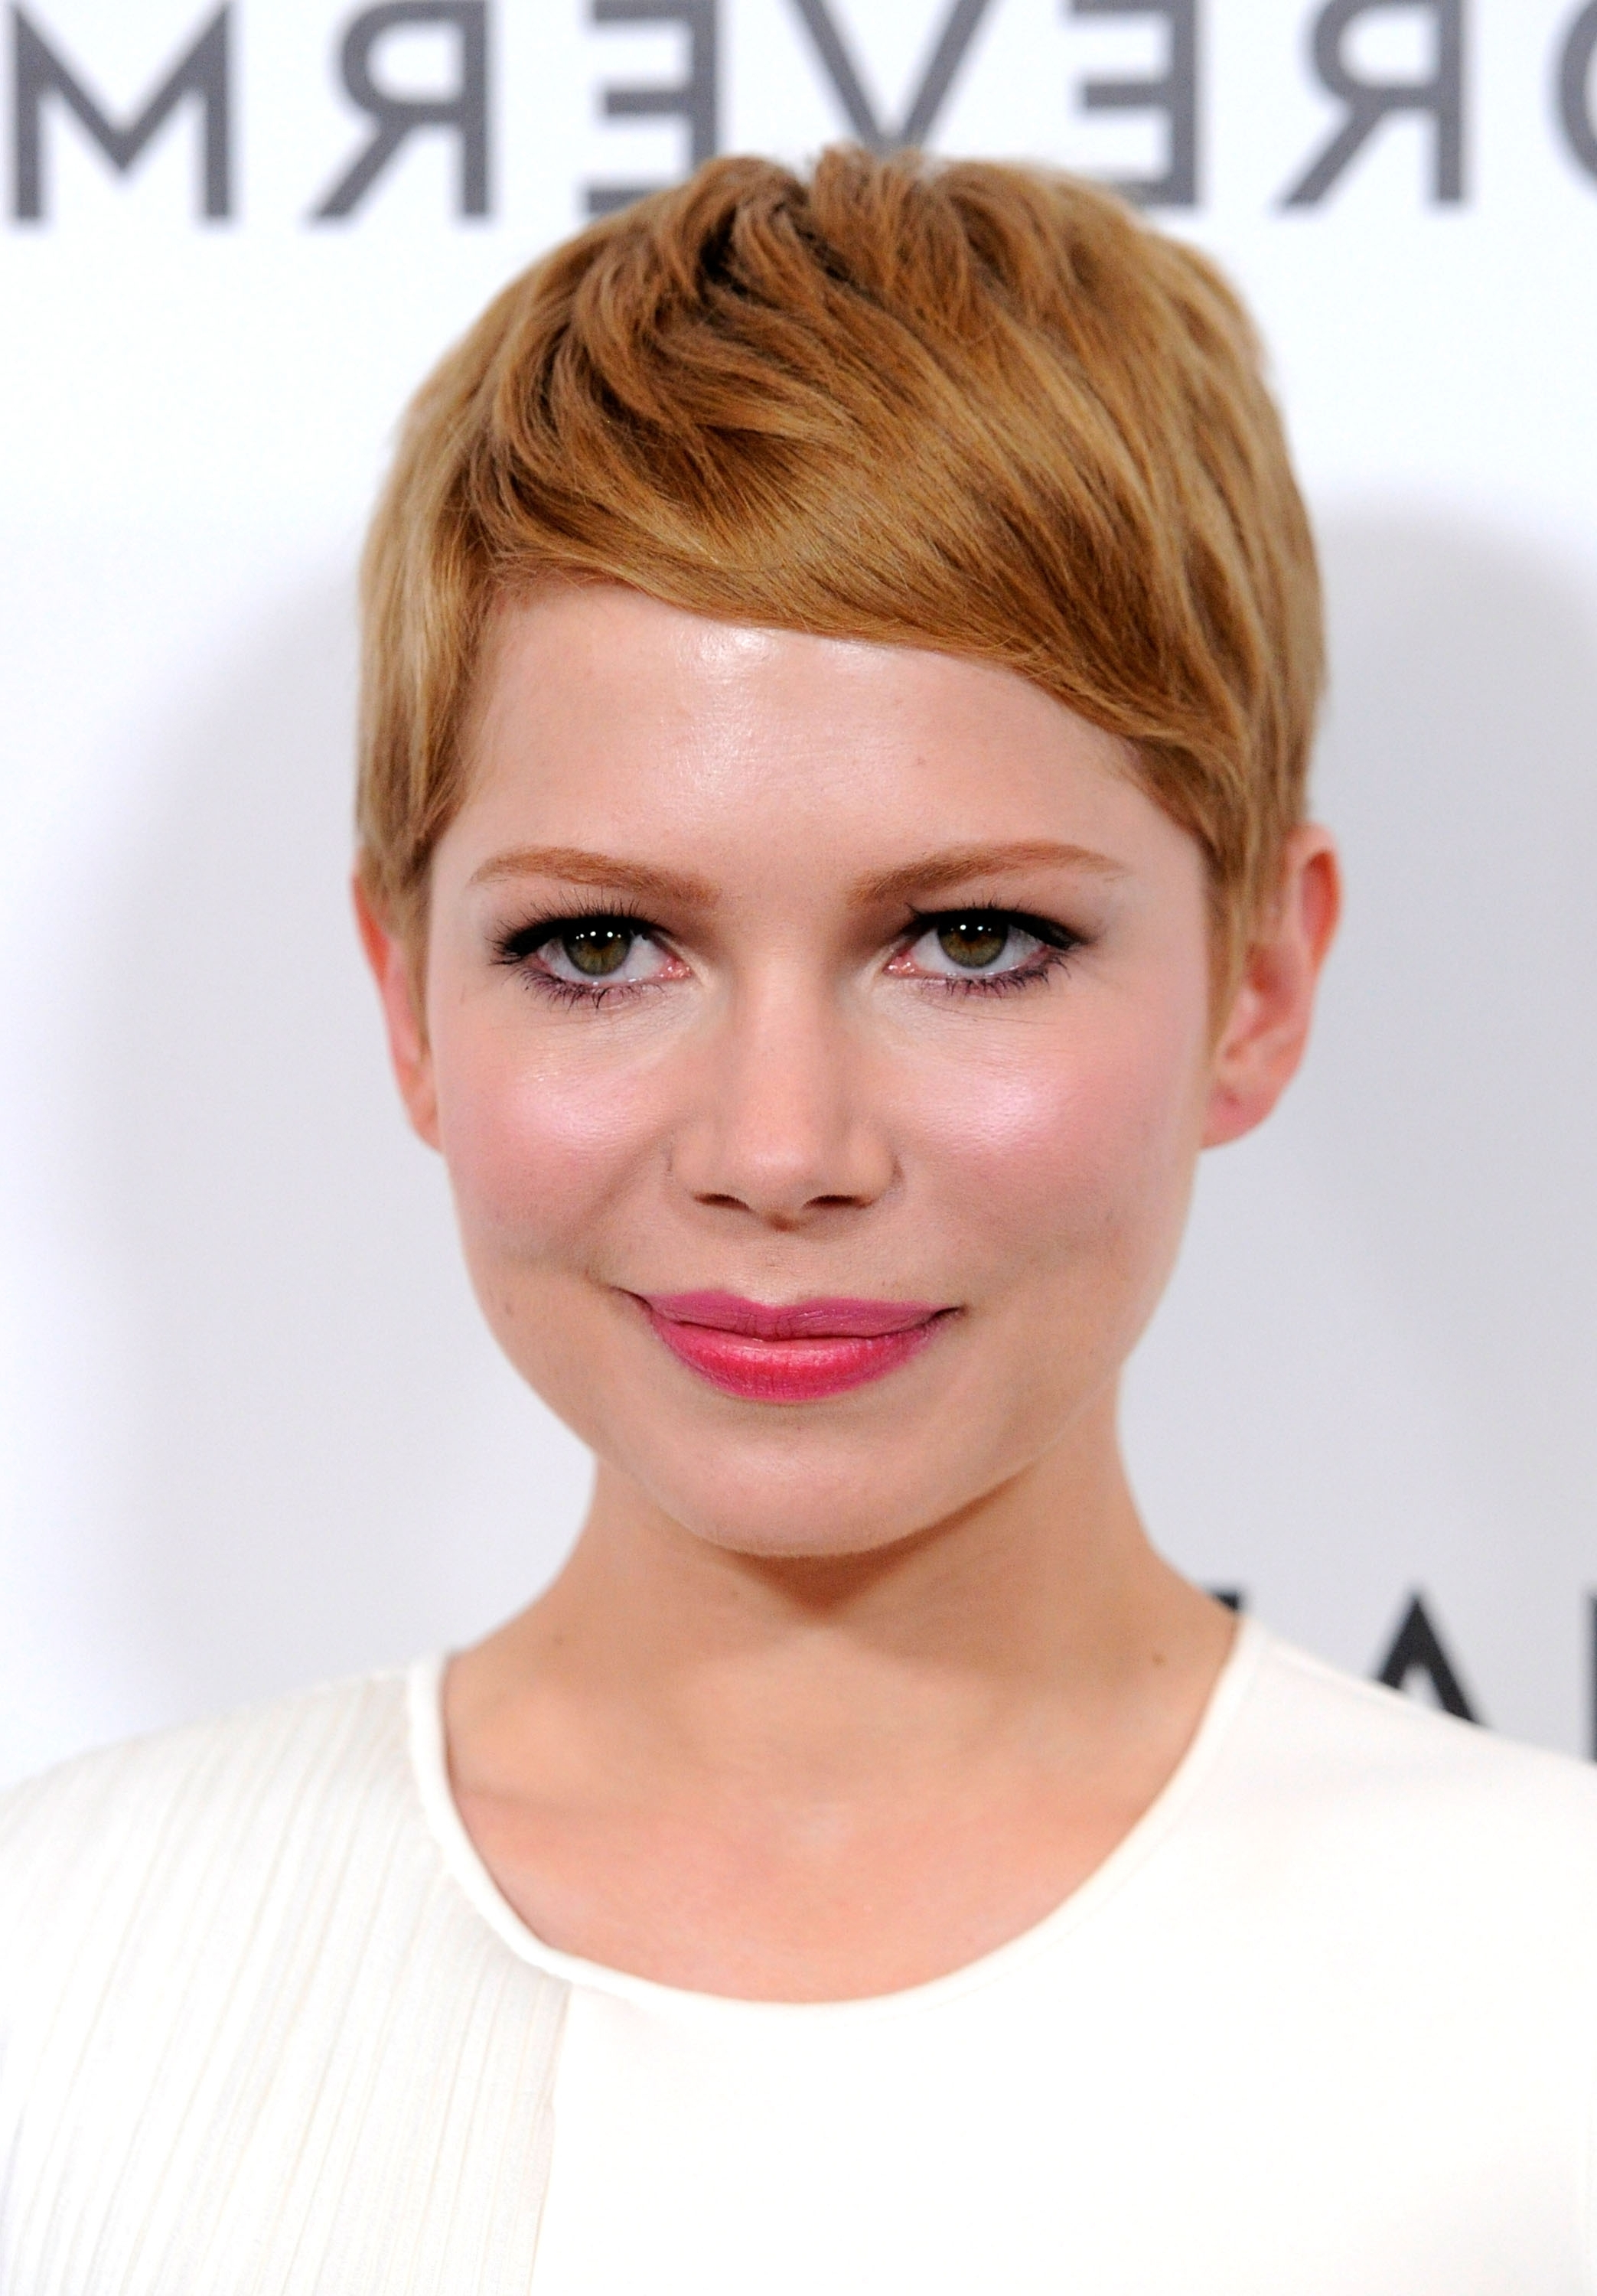 40 Best Short Pixie Cut Hairstyles 2018 – Cute Pixie Haircuts For With Regard To Most Up To Date Pixie Hairstyles For Women (View 4 of 15)